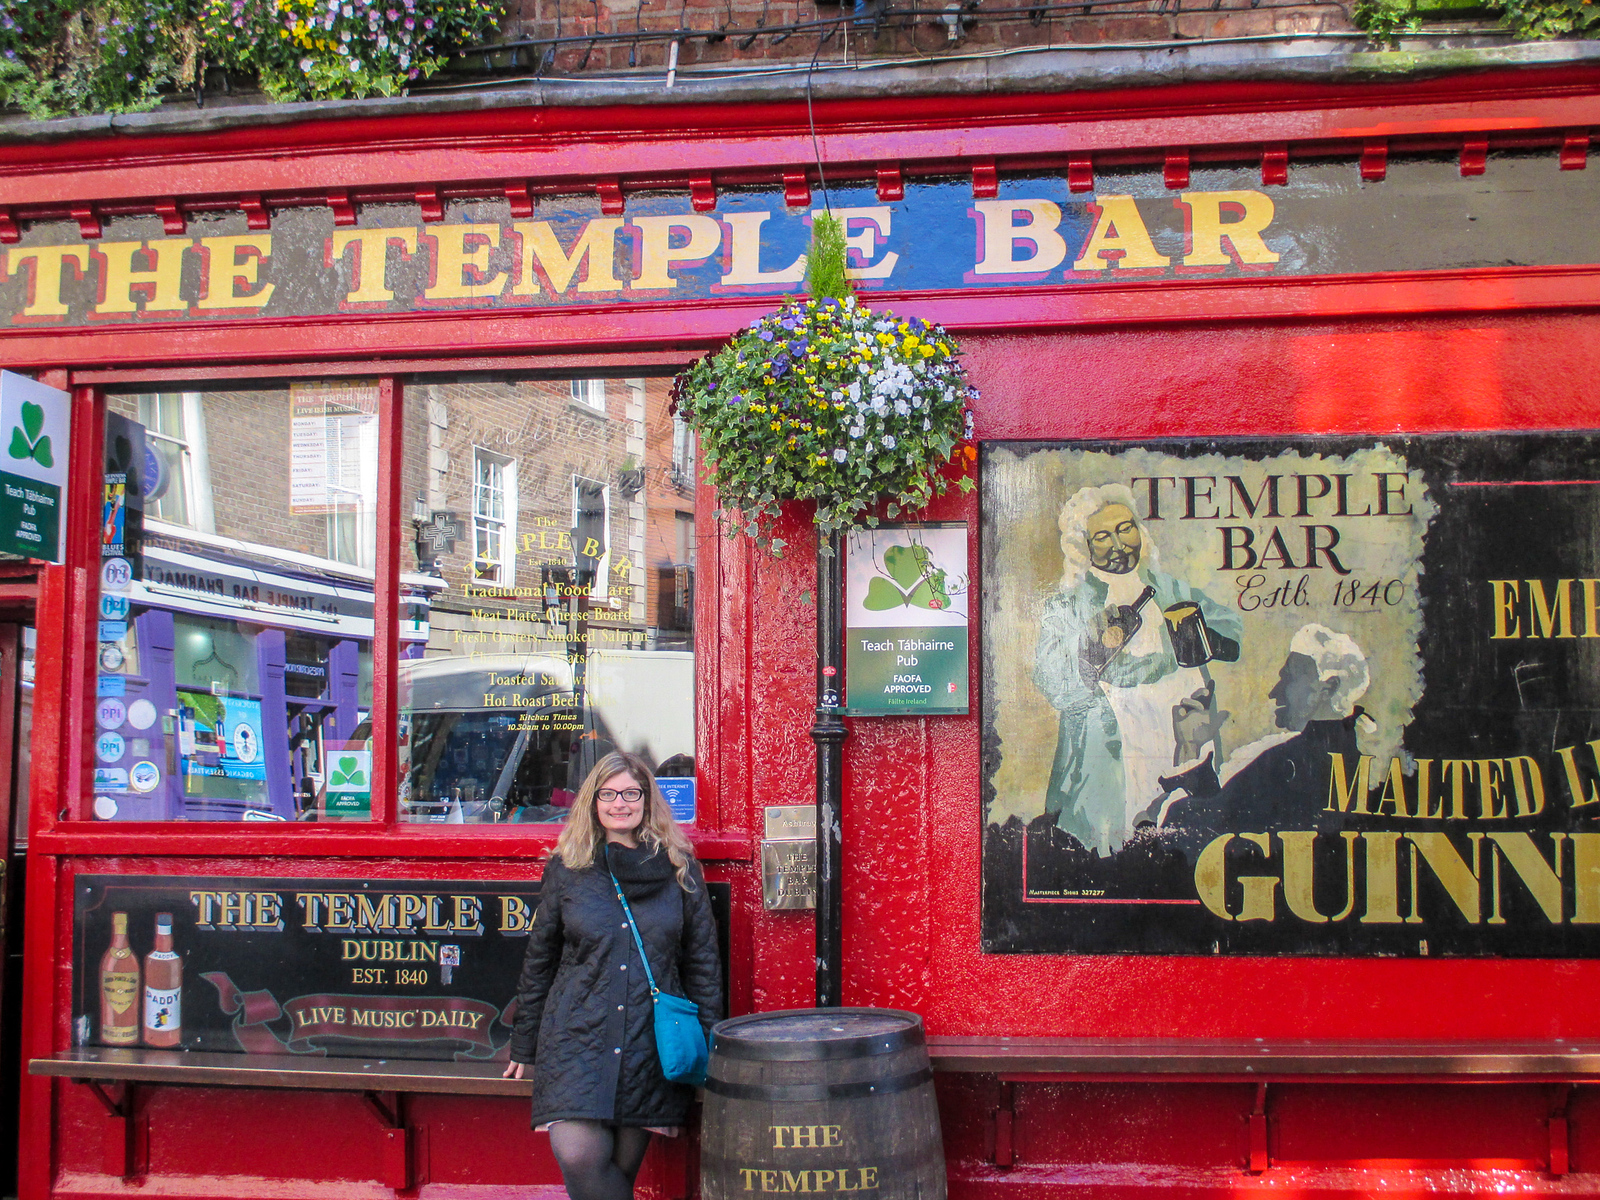 one of my tips for traveling to europe for the first time is not to be scared to go to popular bars, like temple bar, alone